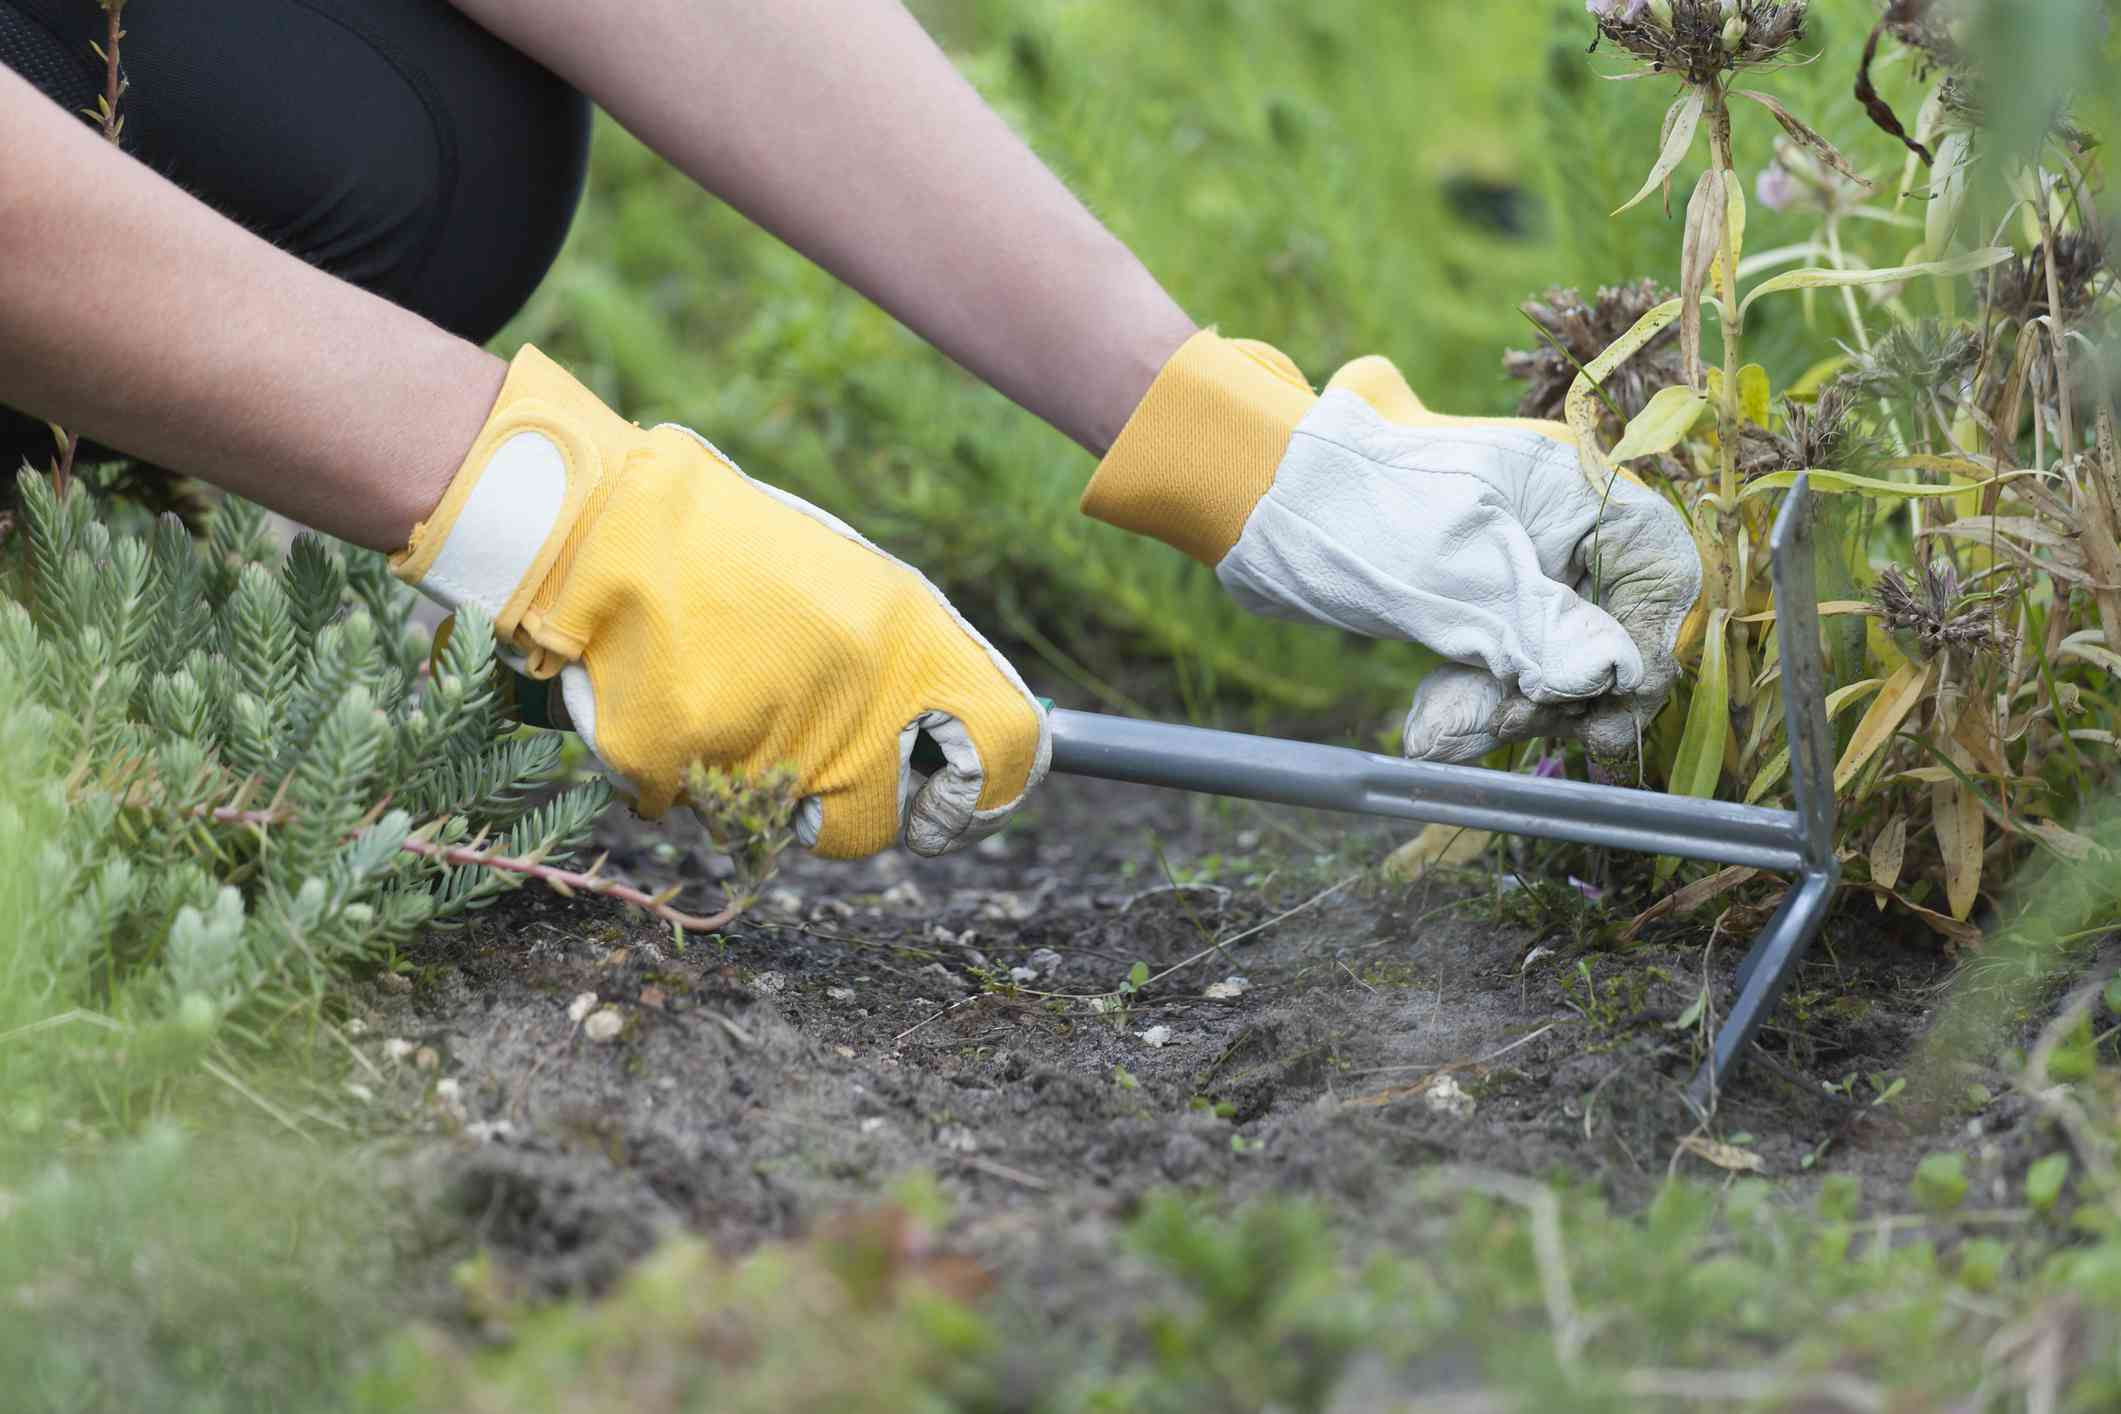 There are many different choices for weeding tools